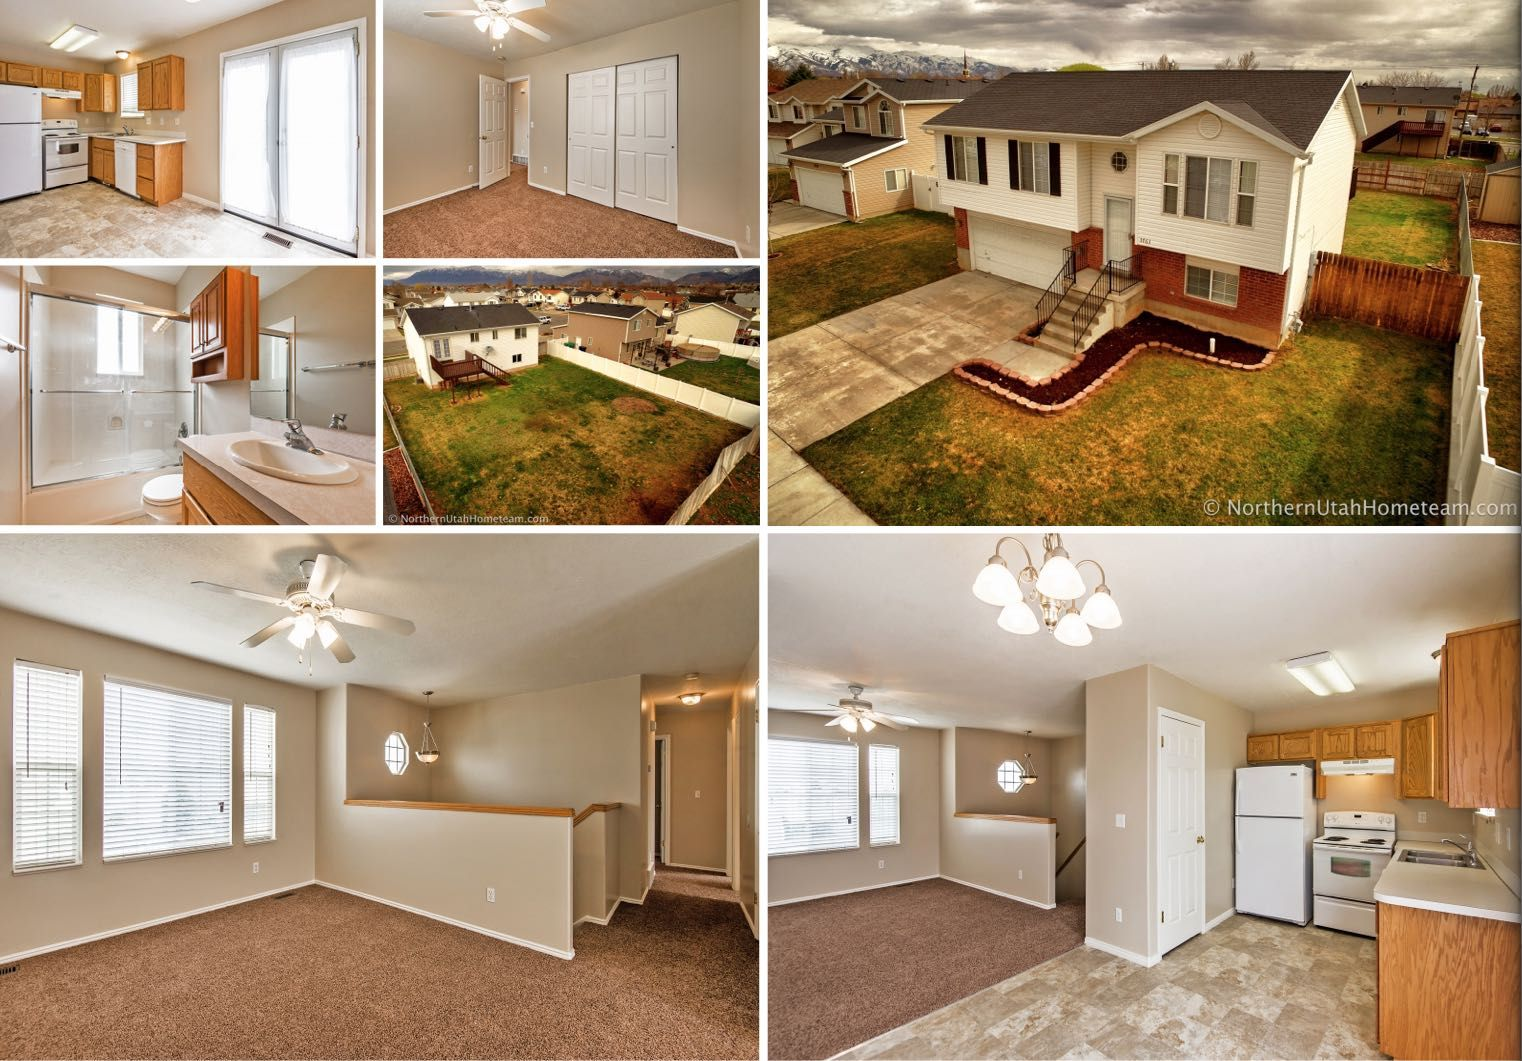 4 Bed 2 Bath Affordable Home For Sale Roy Utah With Finished Basement Home Utah Sale